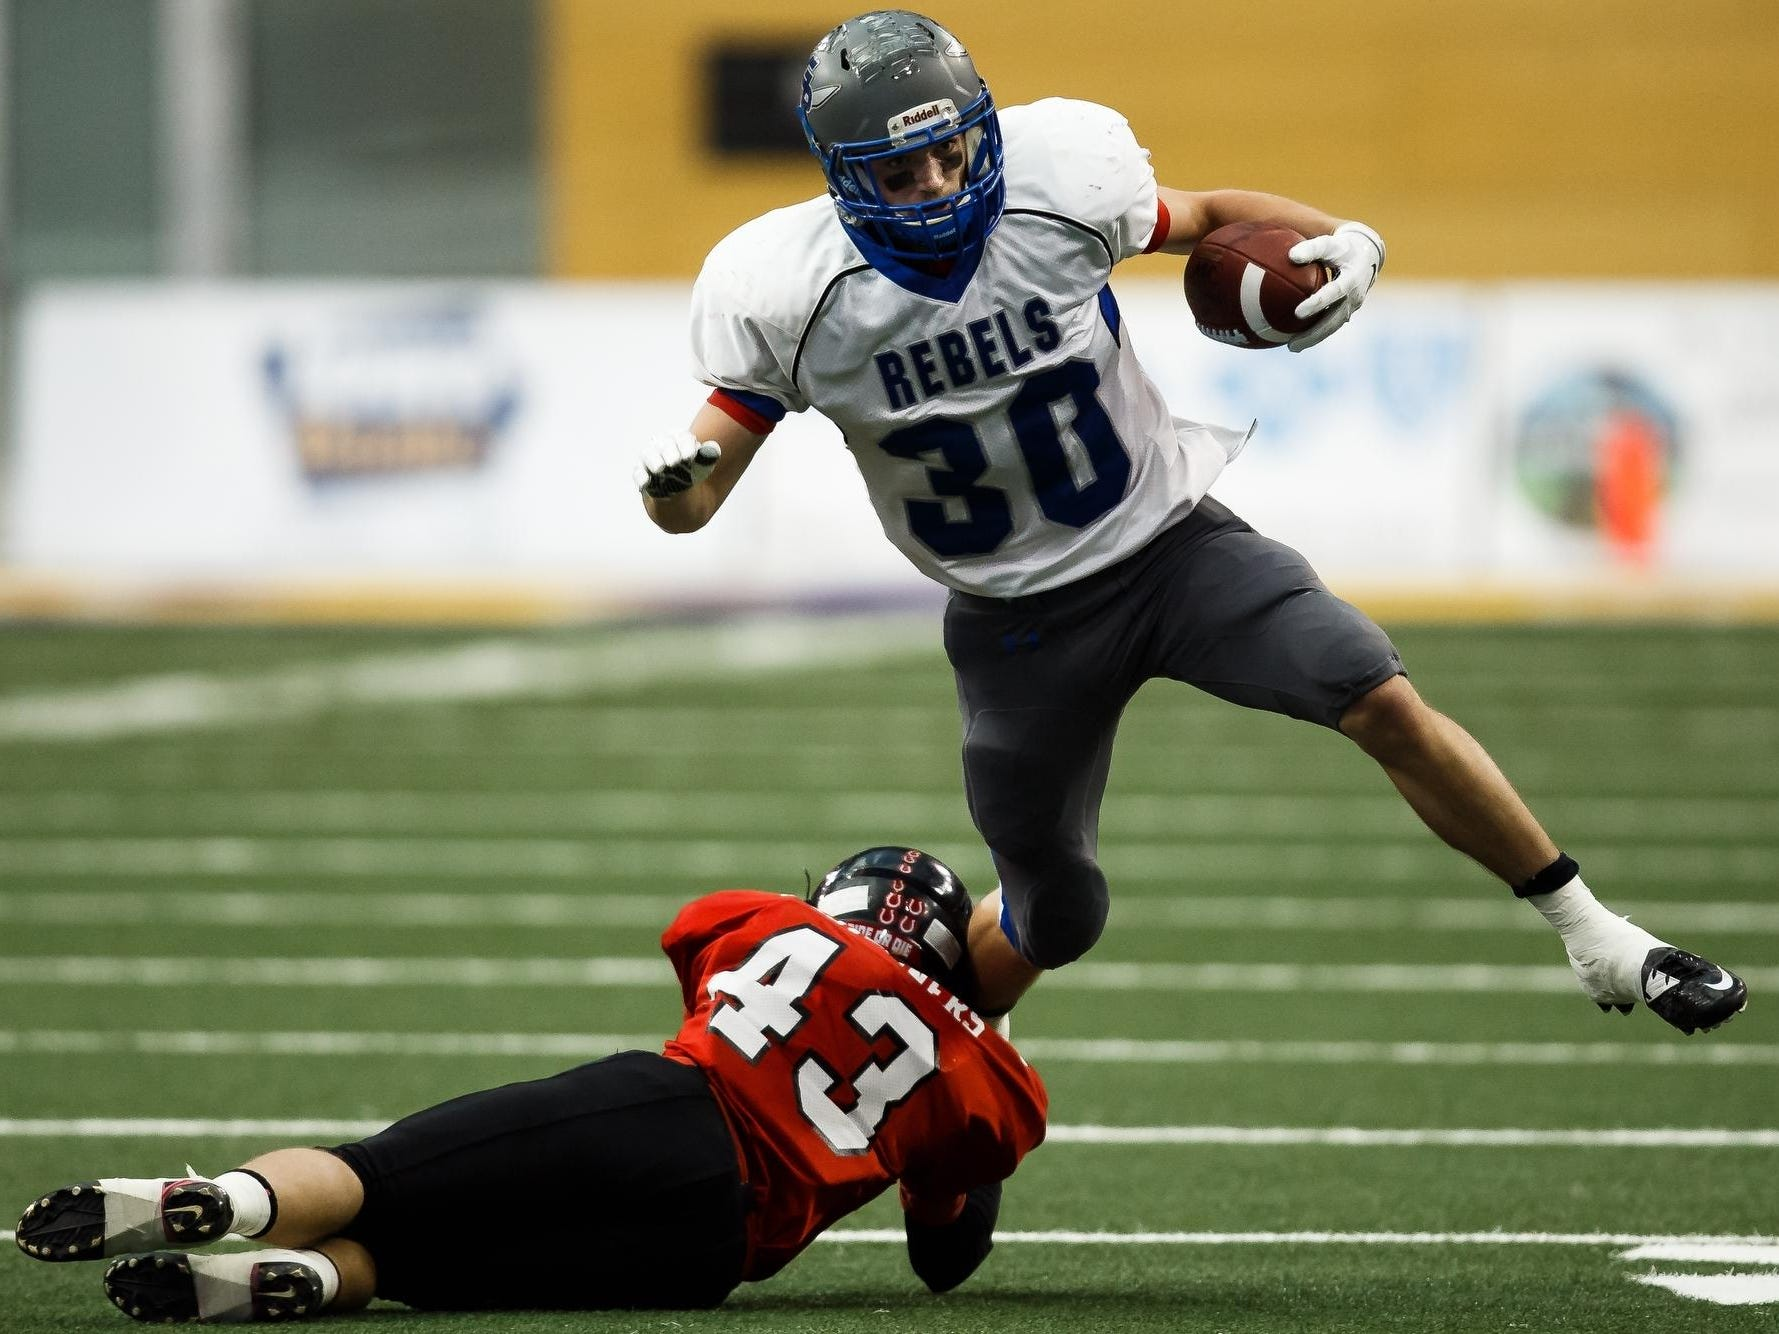 Gladbrook-Reinbeck's Eric Stoakes tries to break a tackle in the Class A state championship. Stoakes rushed for a record 294 yards.